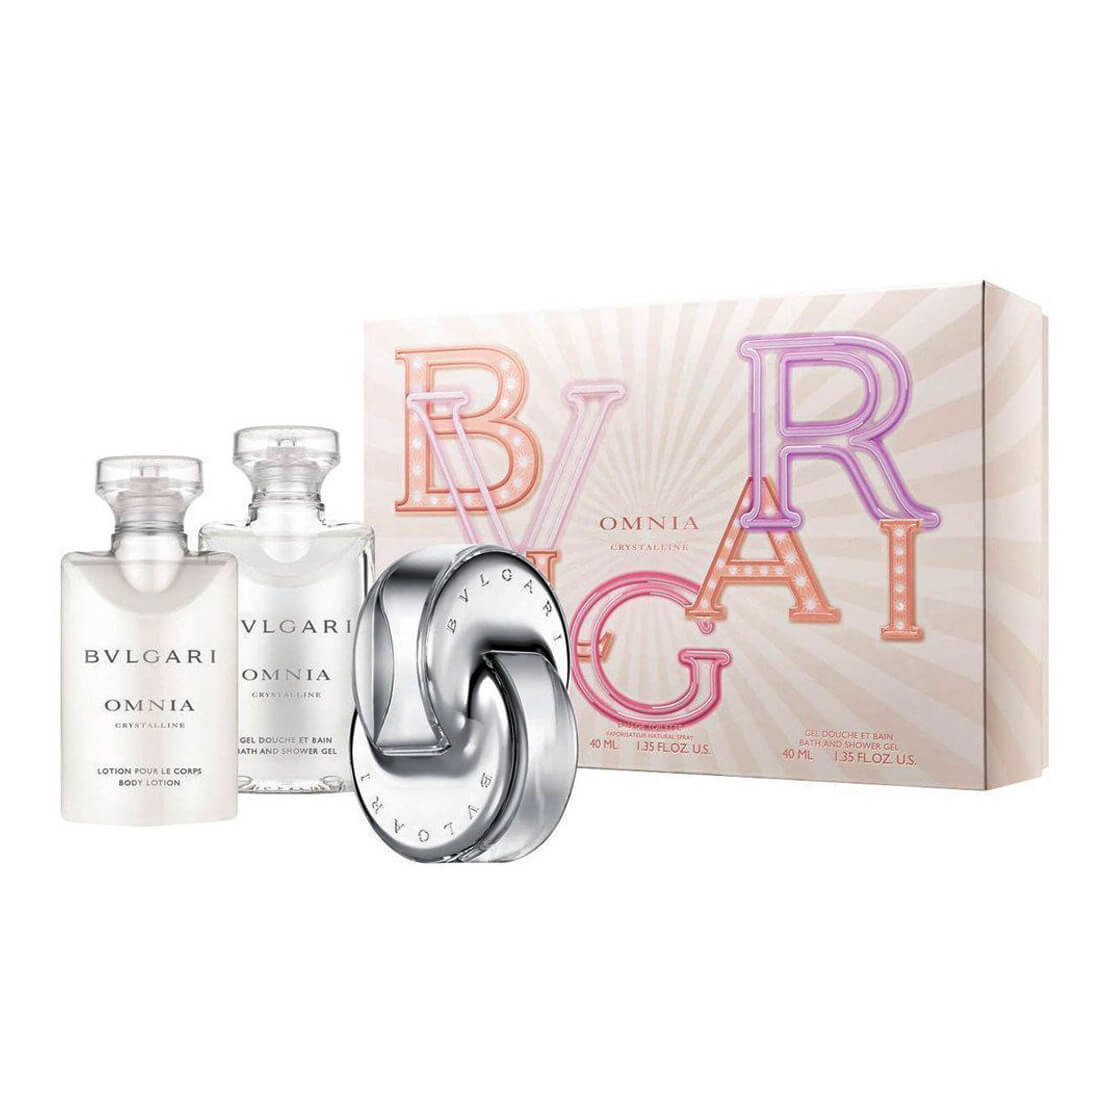 Bvlgari Omnia Crystalline Gift Set Pack Of 3